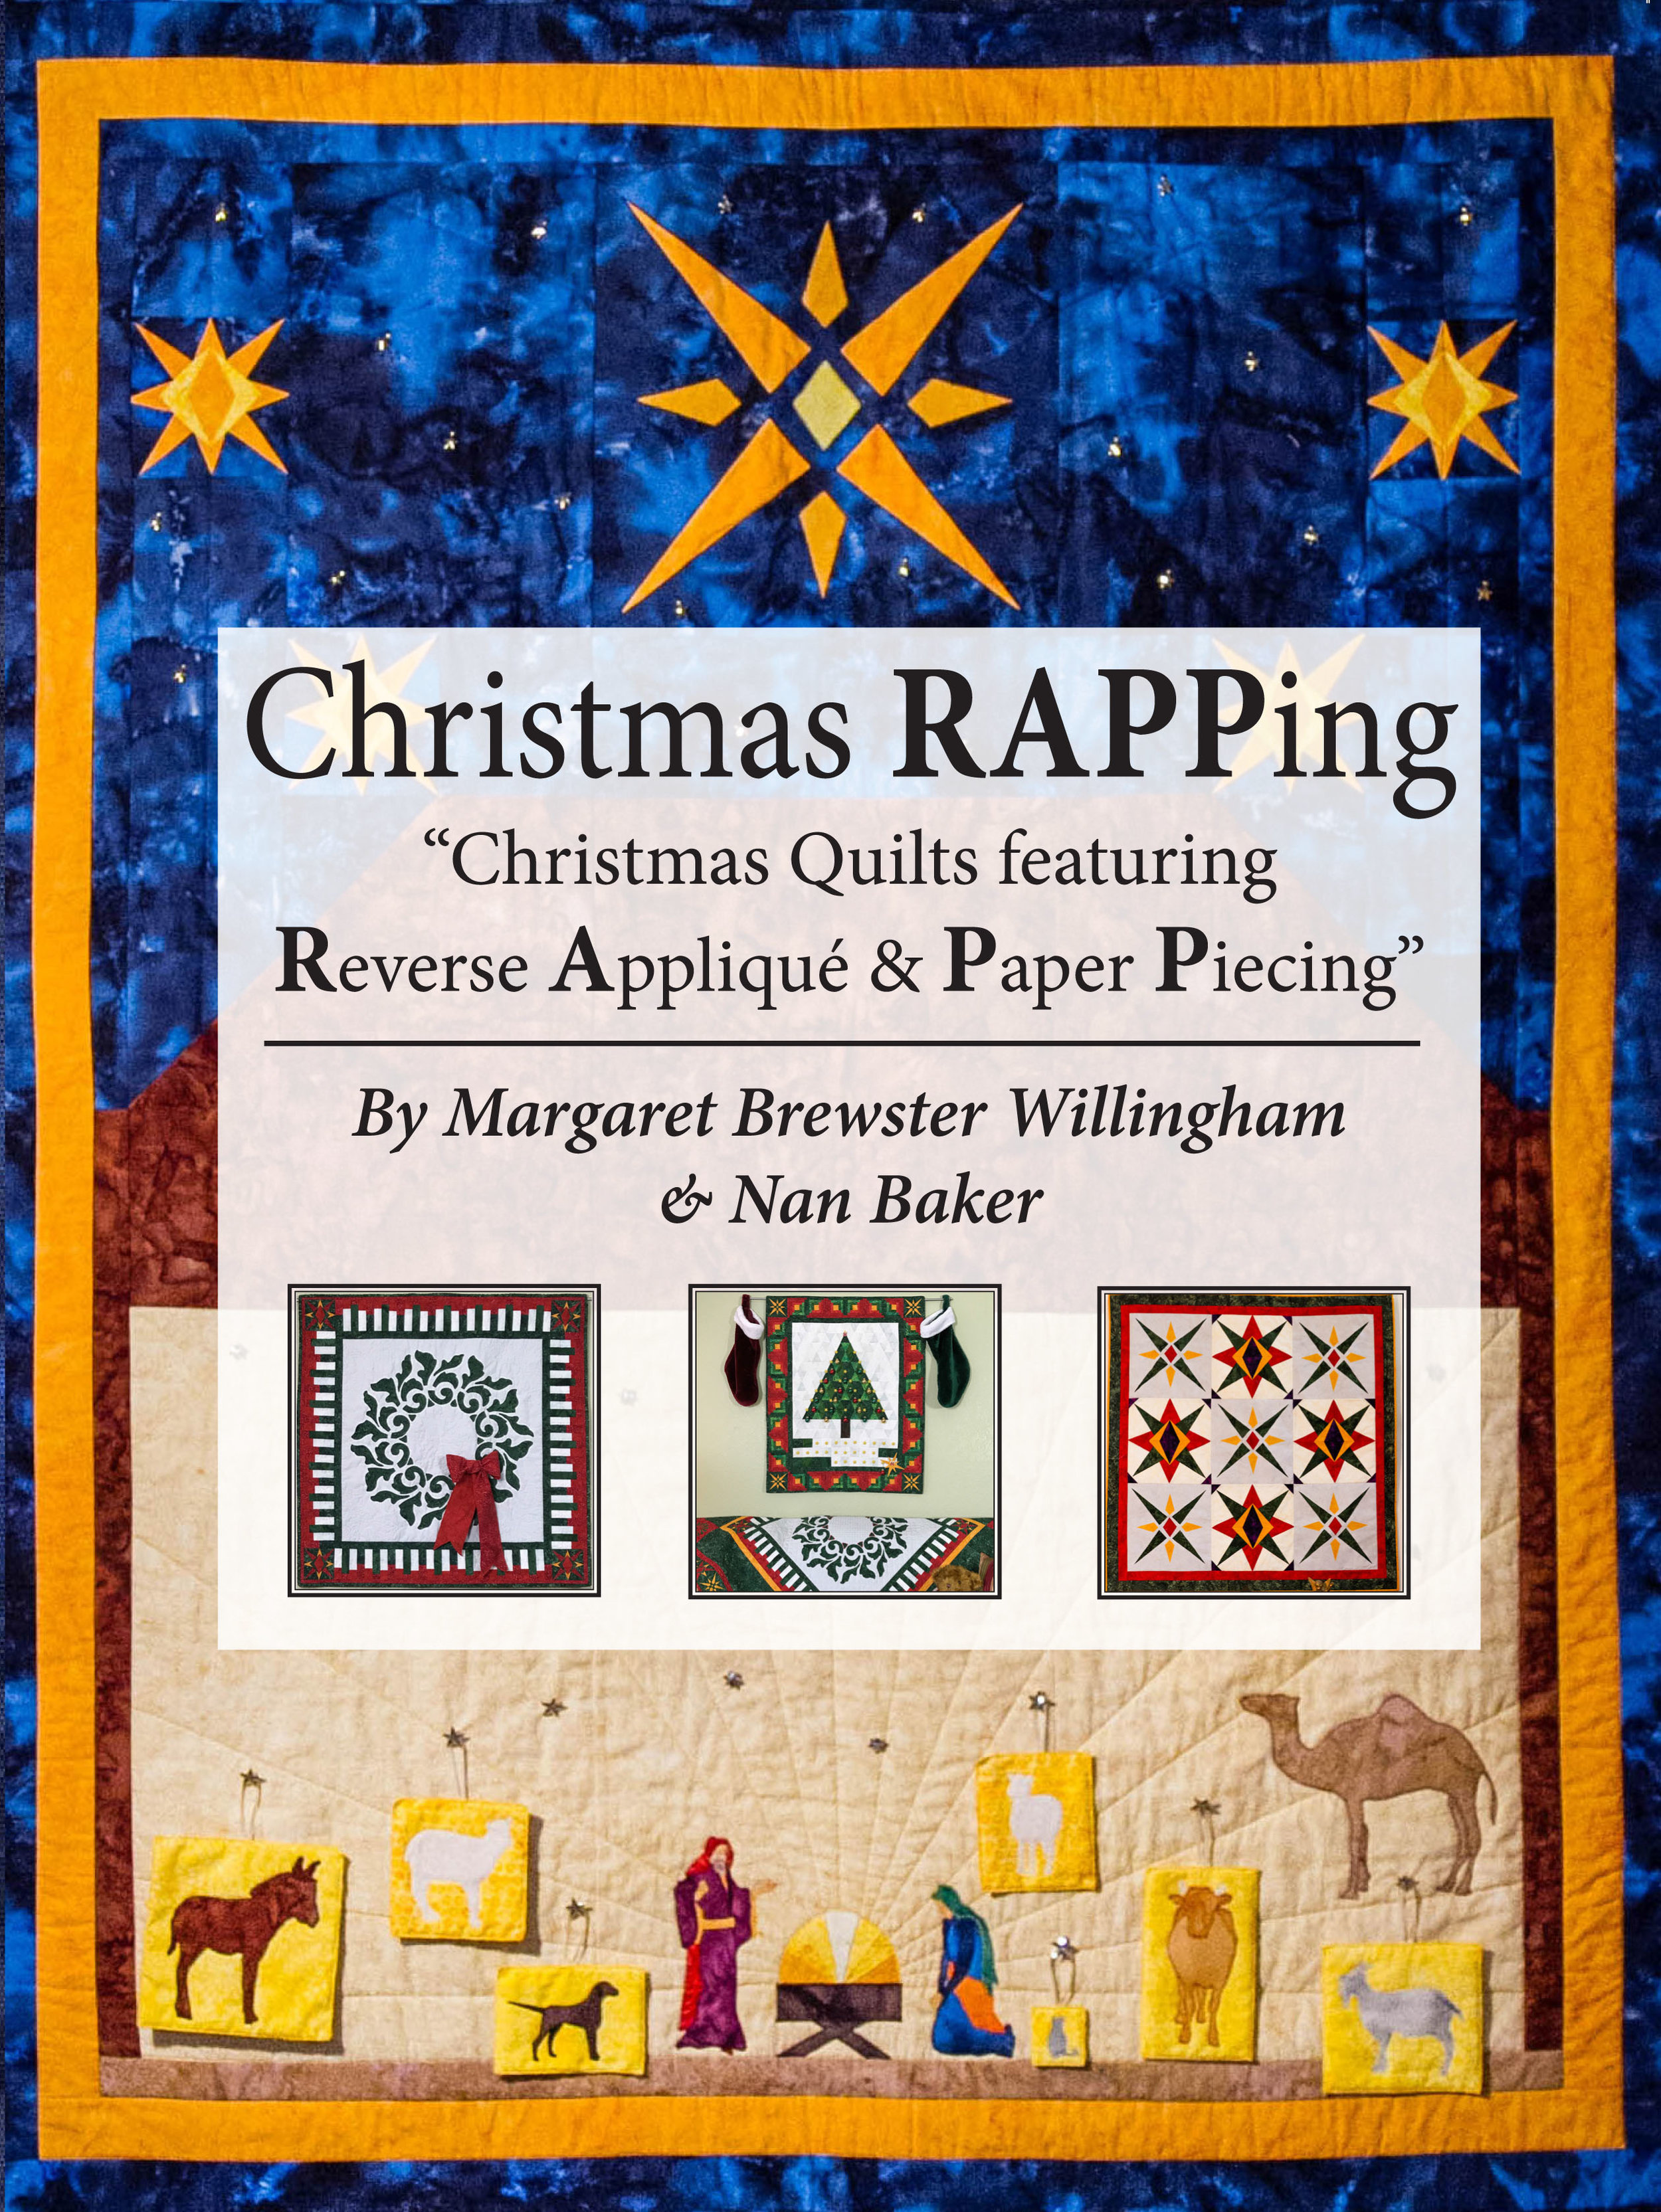 17 + projects to celebrate Christmas for reverse applique by hand or machine and paper-piecing!